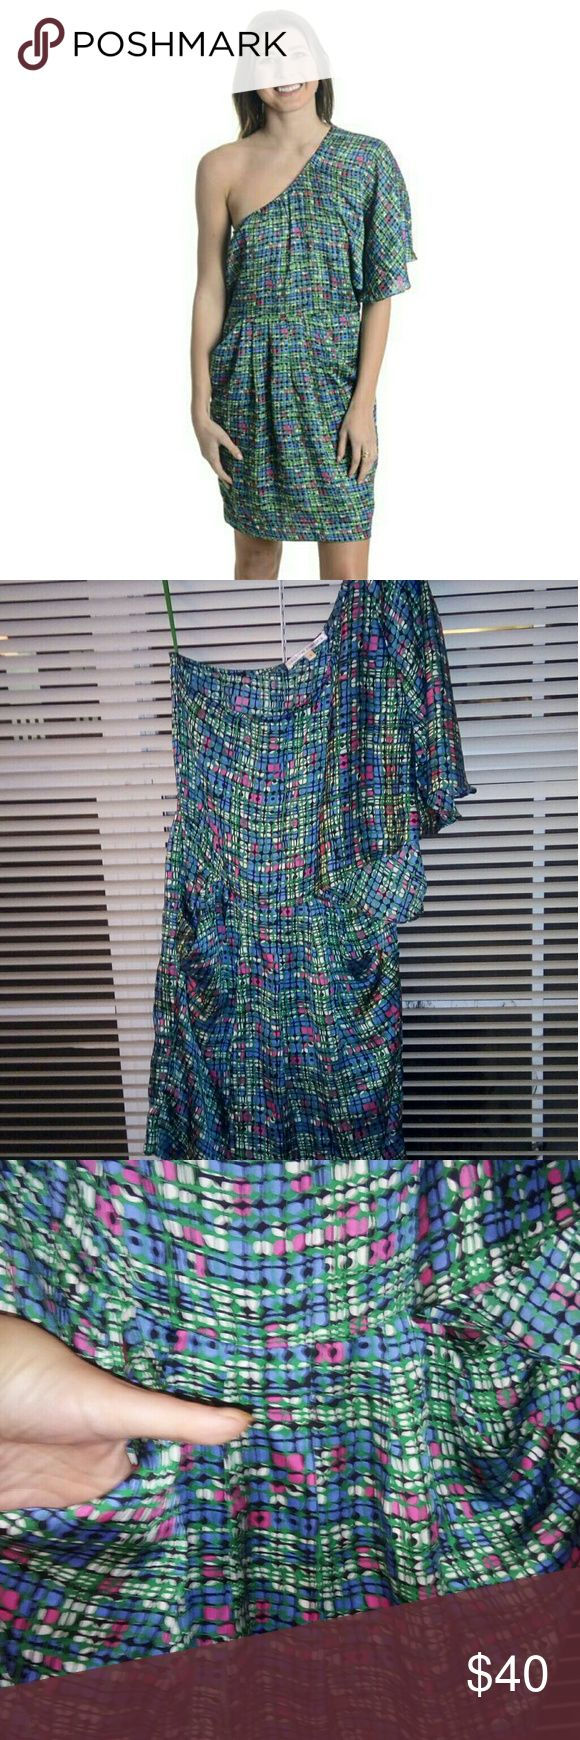 The Chrissy Snow Dress ( Three's Company) Sz S. Perfect. Stitch Fix. Collective Concepts. Never worn. Washed once and hung to dry. N/S pet free home. armpit to armpit is appx 16 inches ( hard dress to measure);Very top to very bottom is appx 36 inches. Stitch Fix Dresses